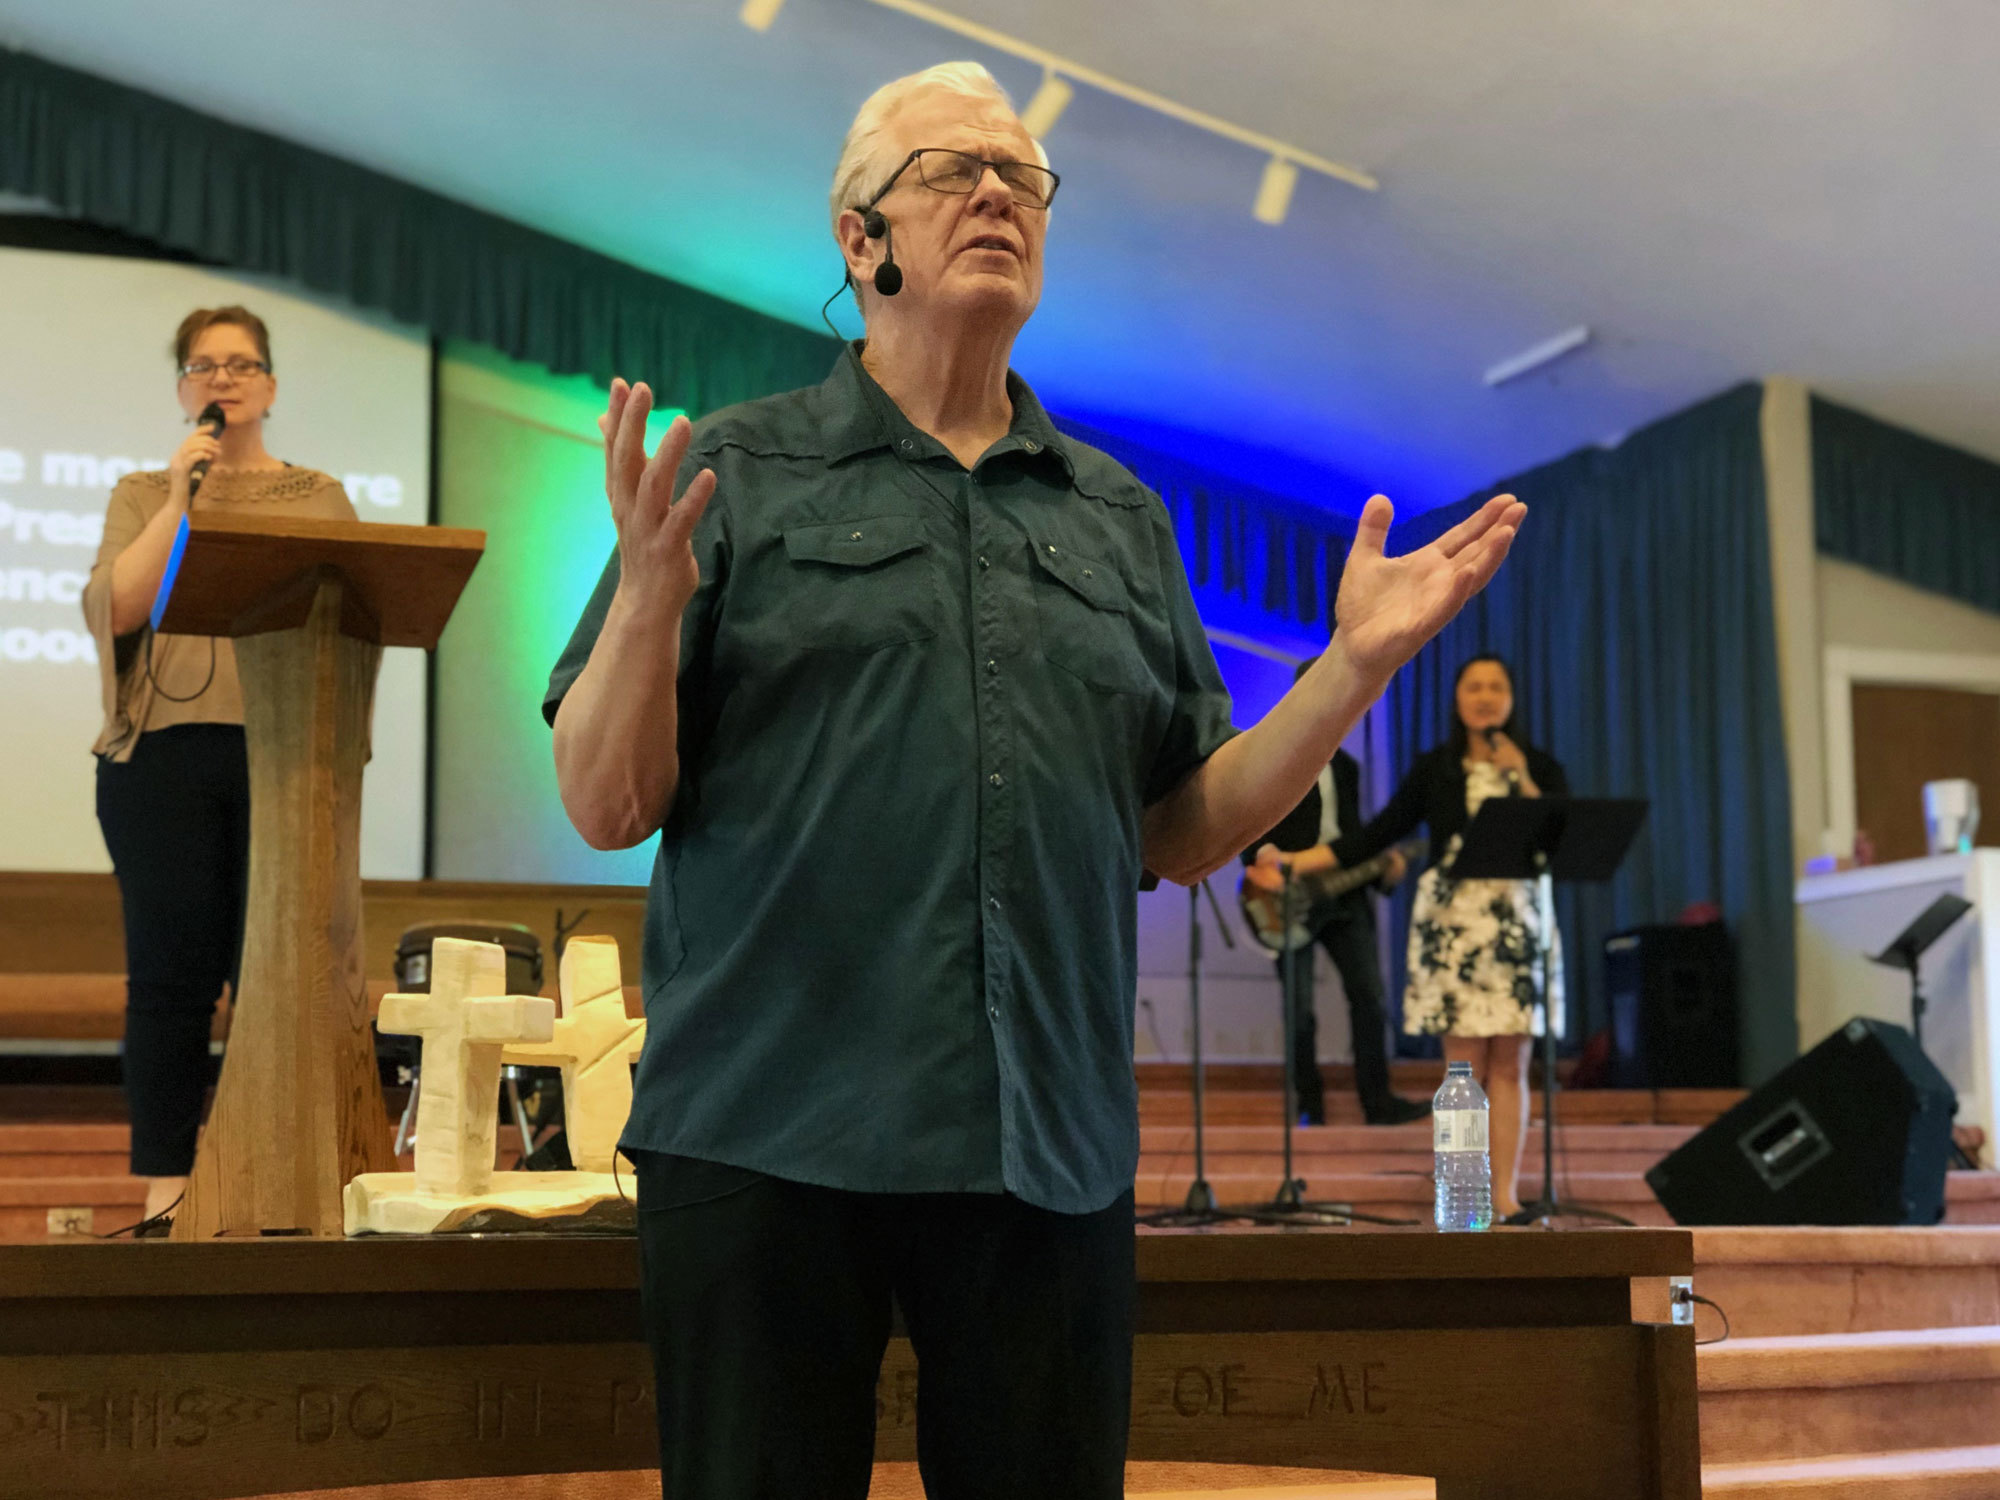 Over the course of two decades, Pastor Bruce Morrison and his congregation at the Christian Fellowship Church in New Glasgow, N.S., donated $150,000 to Gospel for Asia. (Angela MacIvor/CBC)